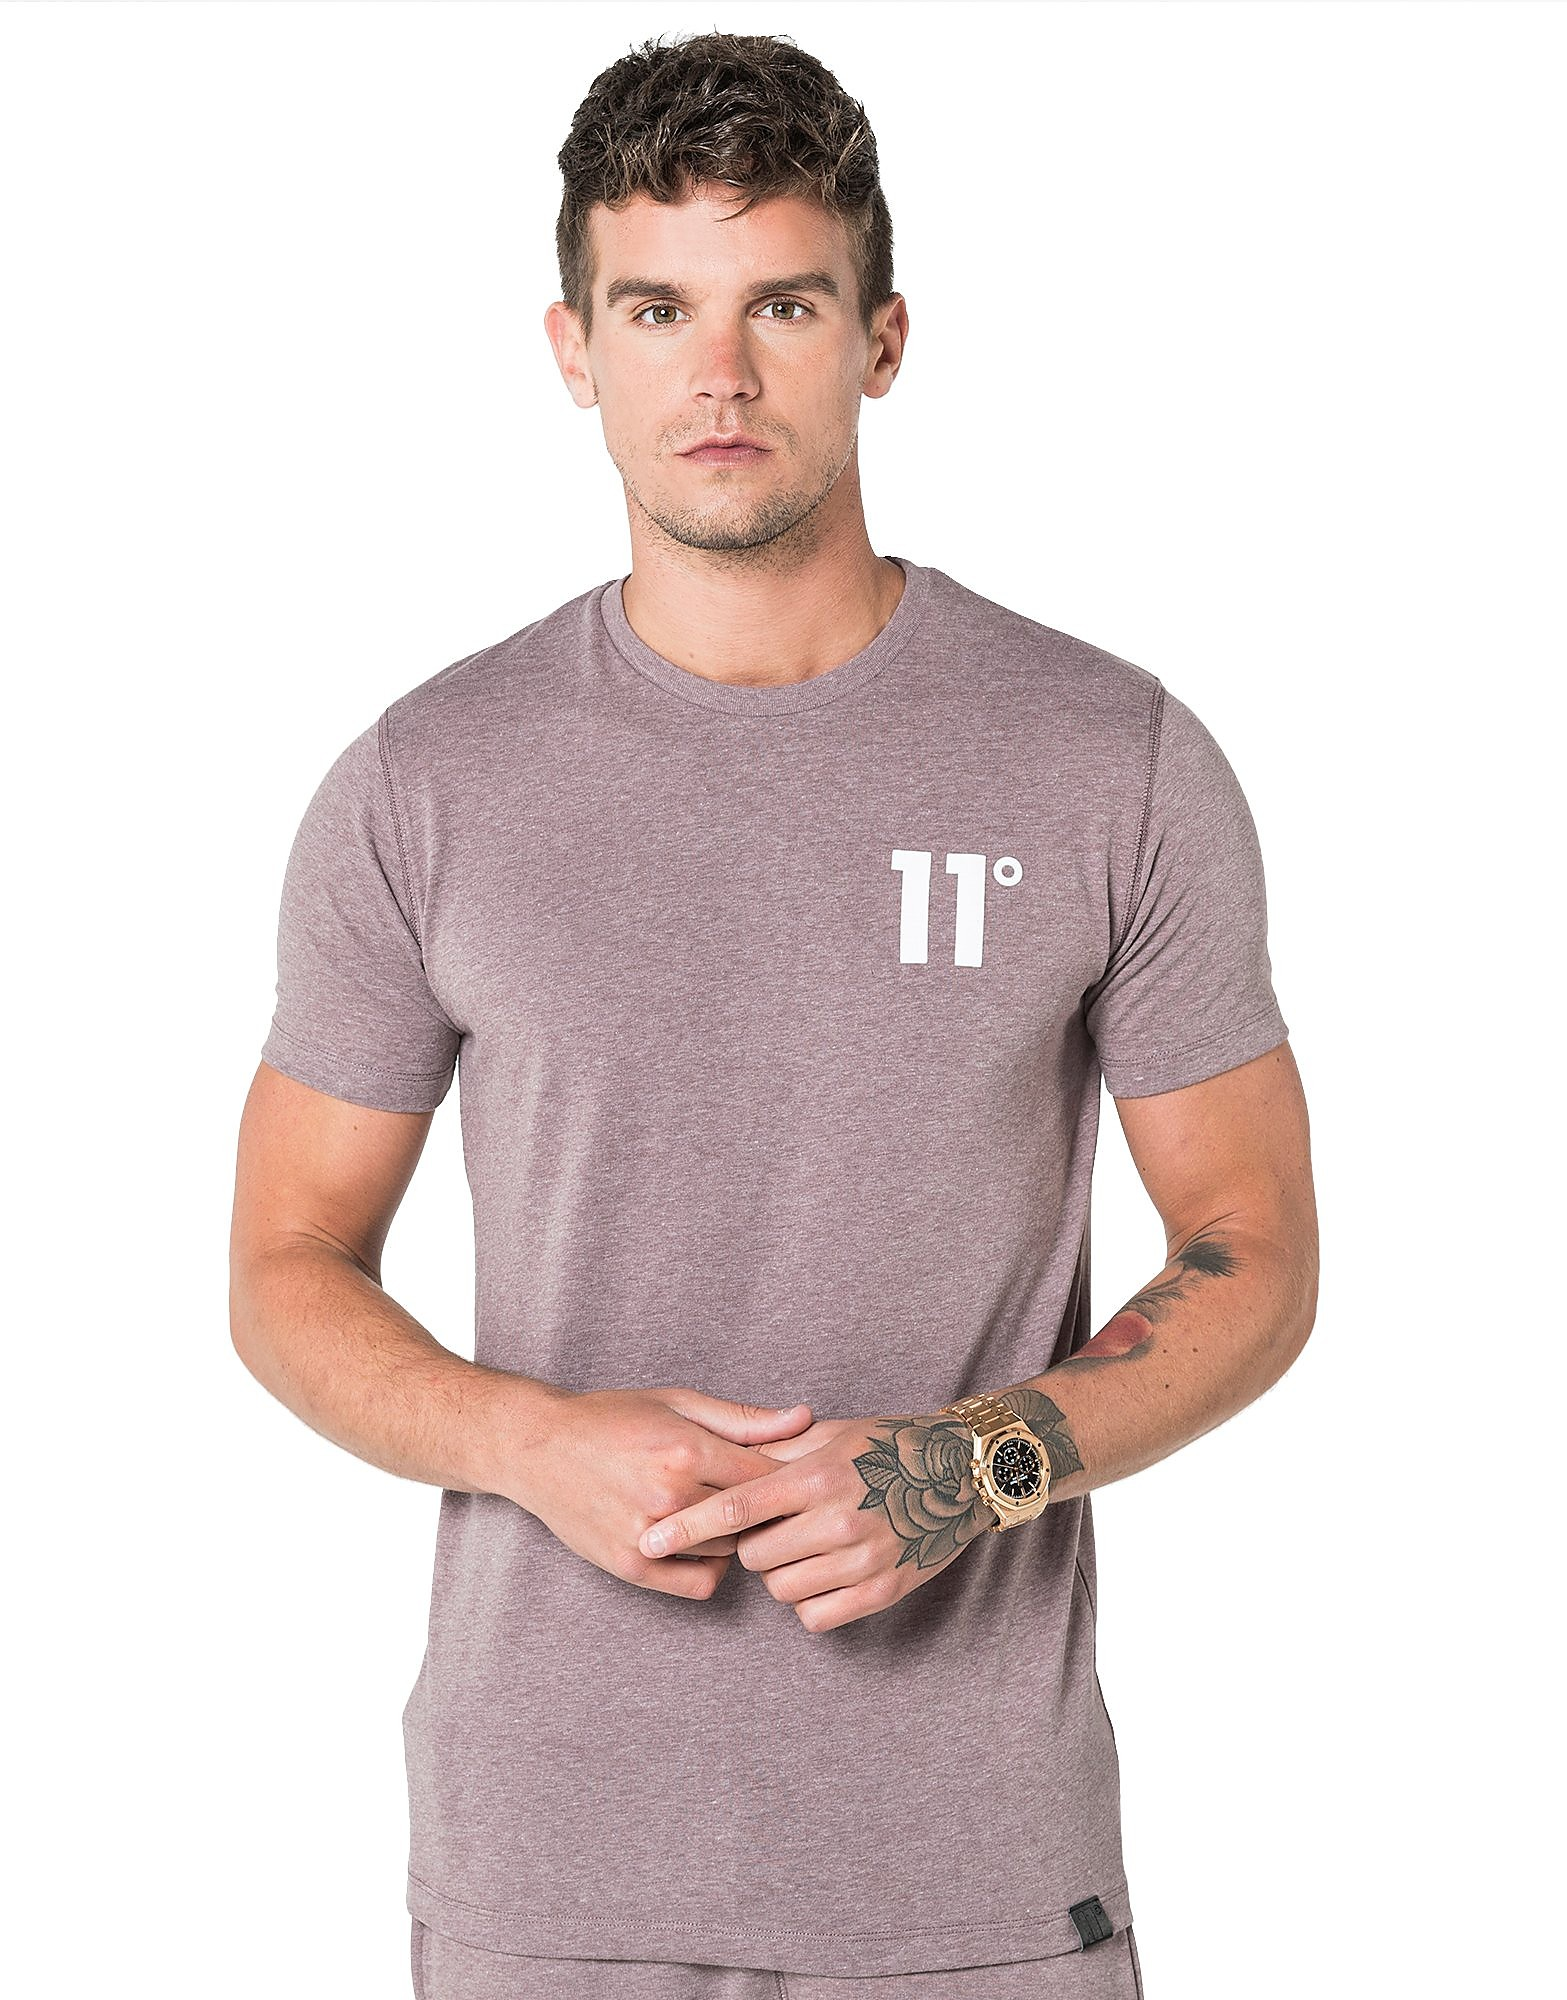 Image de 11 Degrees Core T-Shirt Homme - Brown, Brown